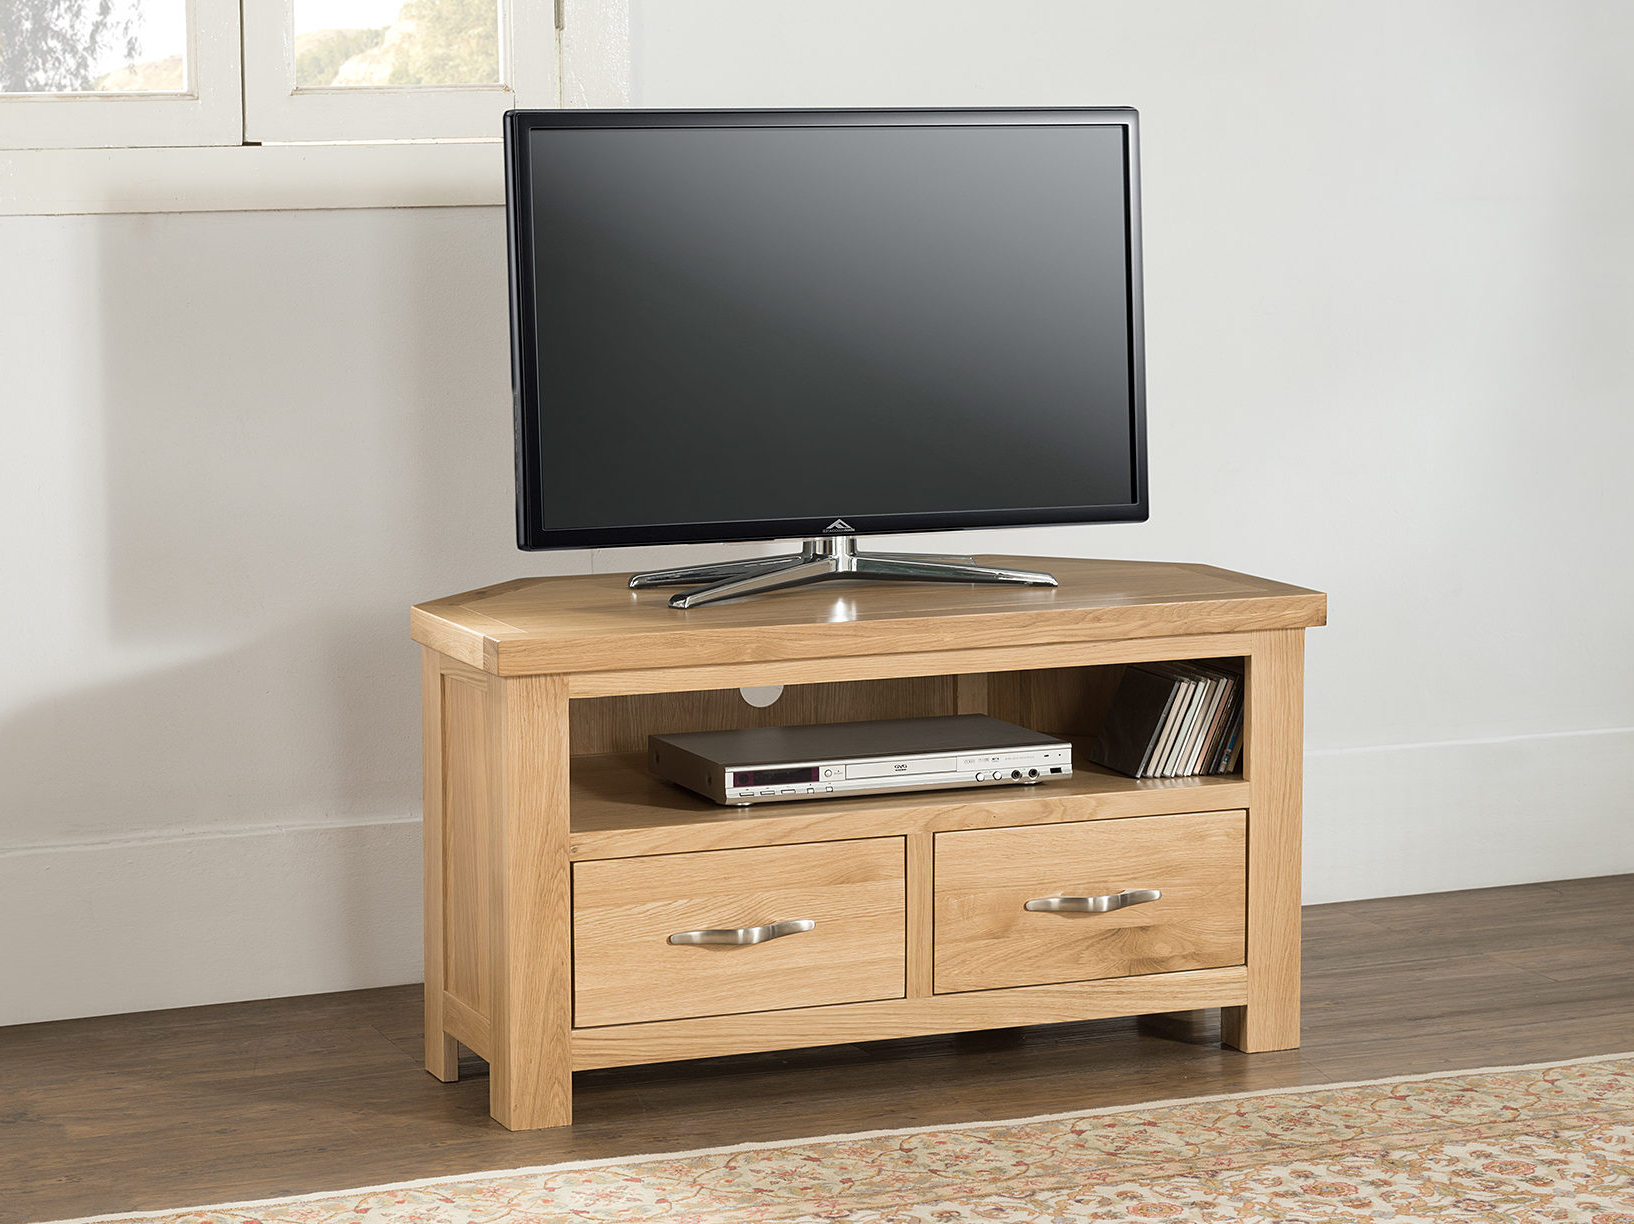 Trendy Broadoak Corner Tv Unit, Uniques Furniture Shop Pertaining To Small Oak Corner Tv Stands (View 15 of 20)